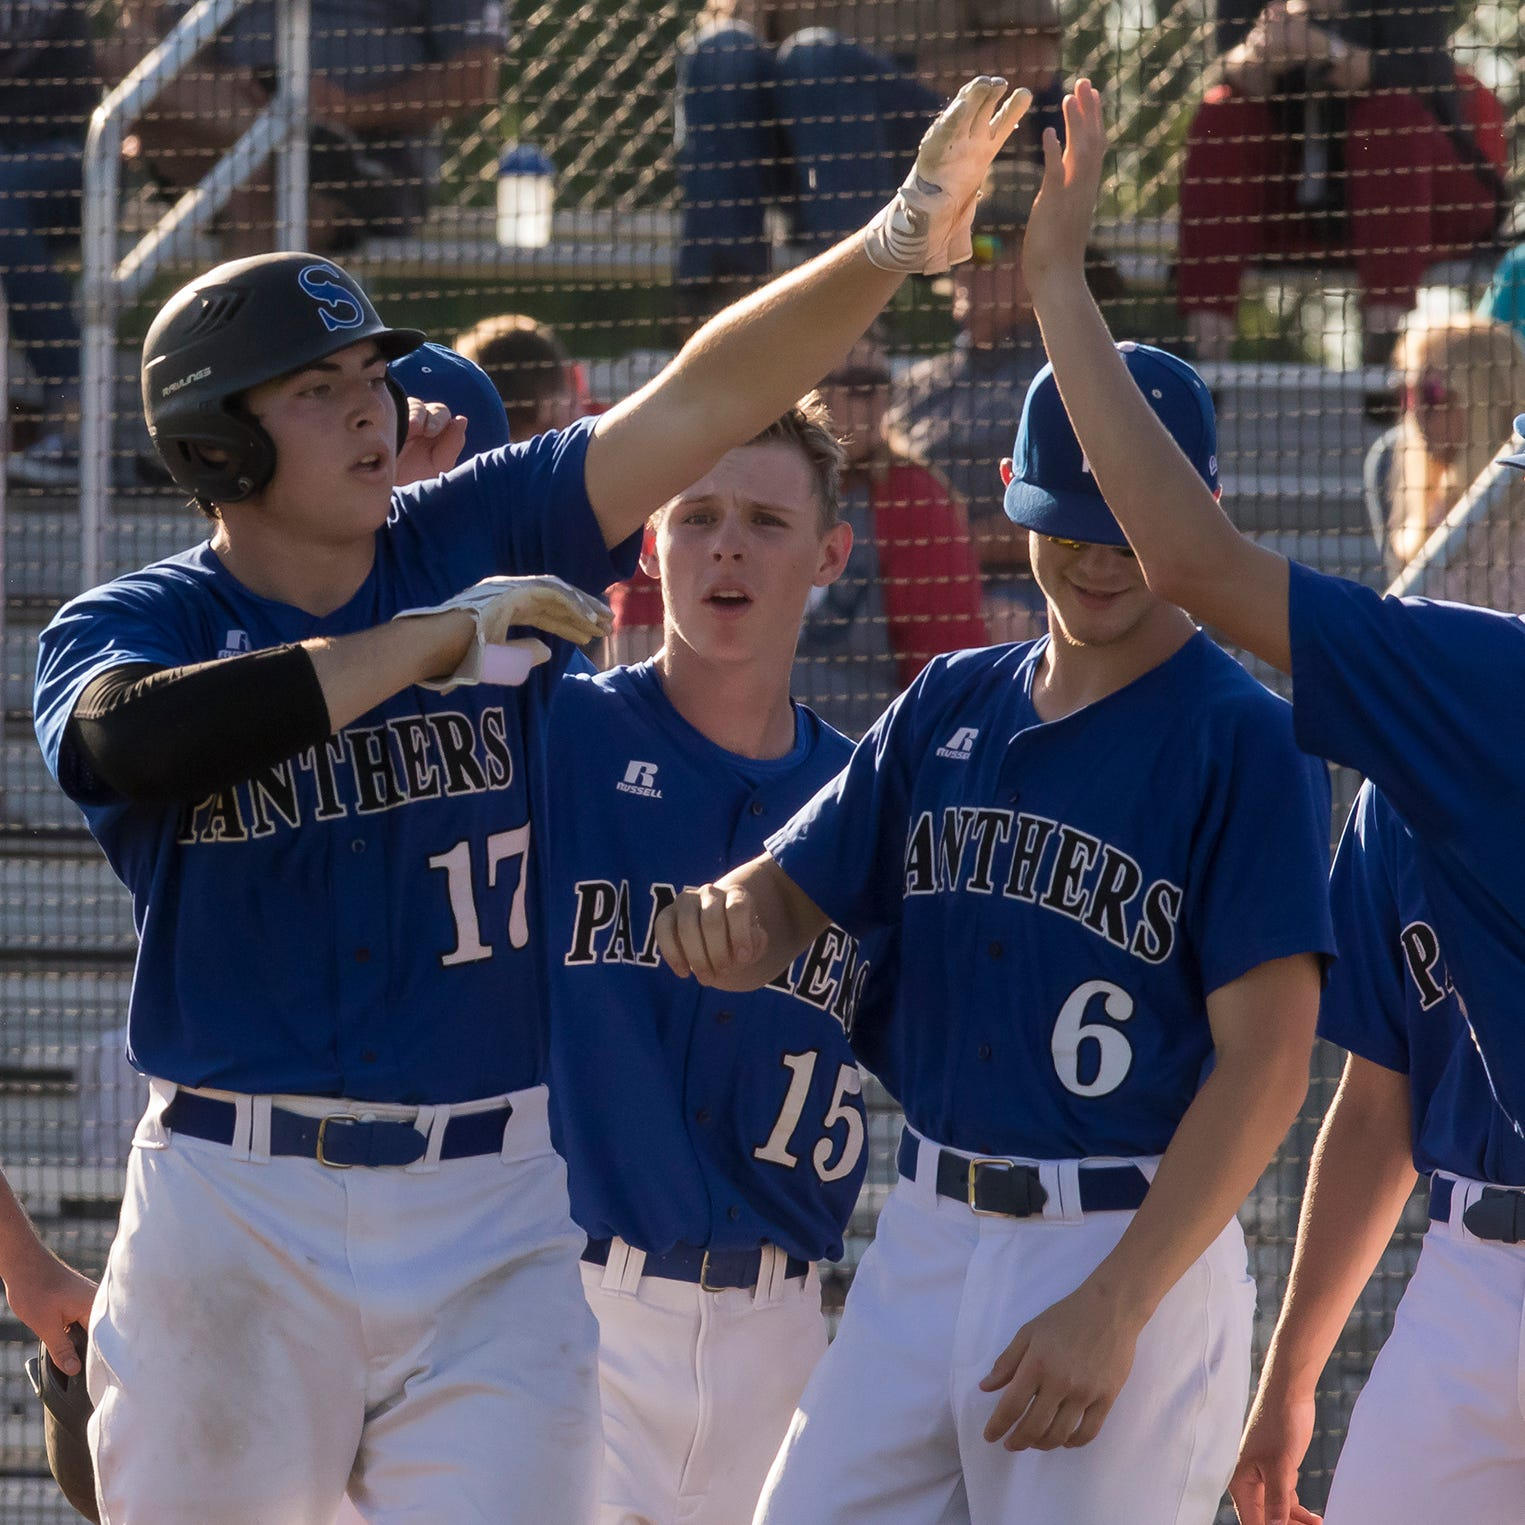 Sterlington's Trey Rugg (17) high fives his Panthers teammates after rounding the bases of his 3 run home-run to left field in the bottom of the 4th inning during the game against West Monroe High School in Sterlington, La. on April 9. Sterlington would go on to win the game 7-3.